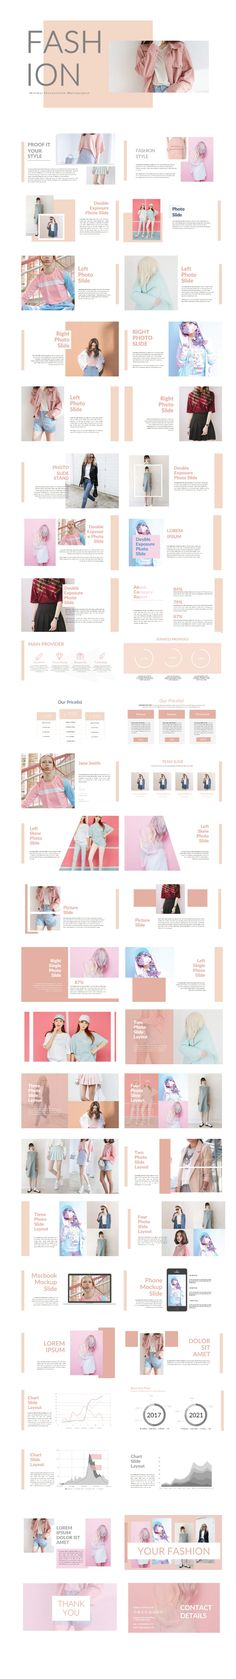 Pinky Fashion Template - Creative PowerPoint Templates